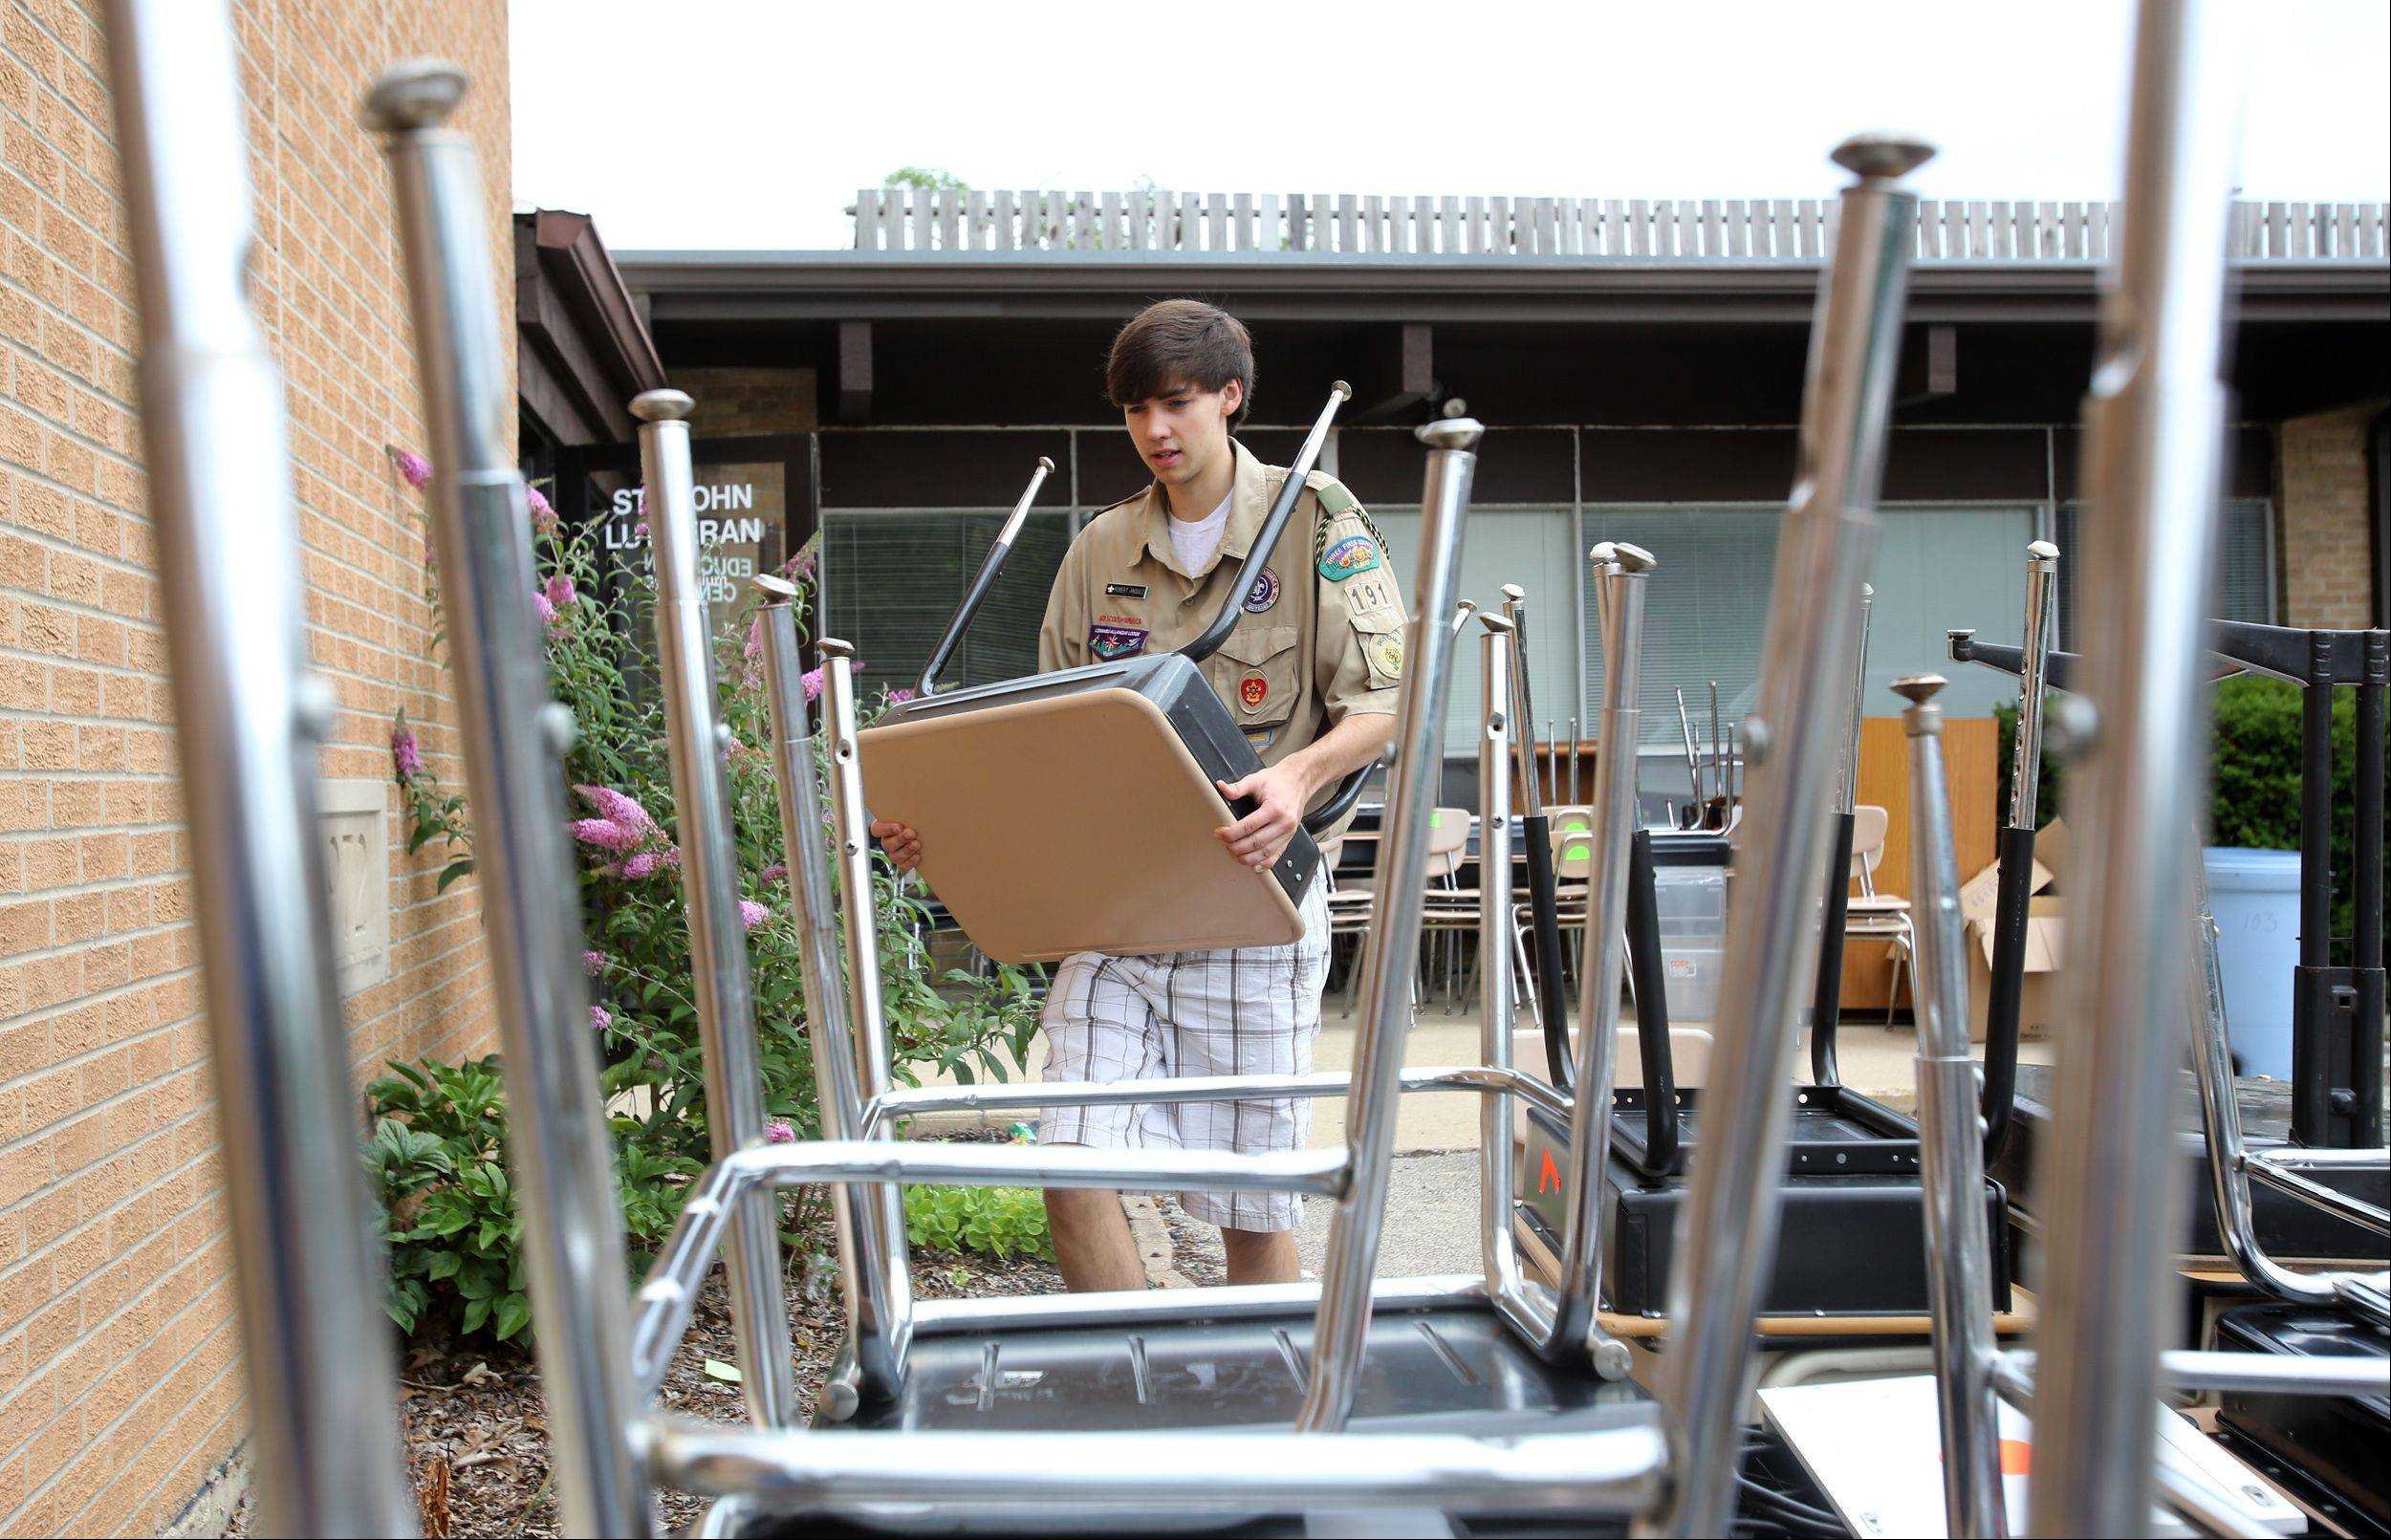 Most of Clare Woods Academy's desks and furniture have been moved into the new facility at the former St. John's Lutheran School in downtown Wheaton. Eagle Scout candidate Robert Angiulo, of Troop 191 in Carol Stream, helped with the move over the weekend in preparation for the school's opening Aug. 22.